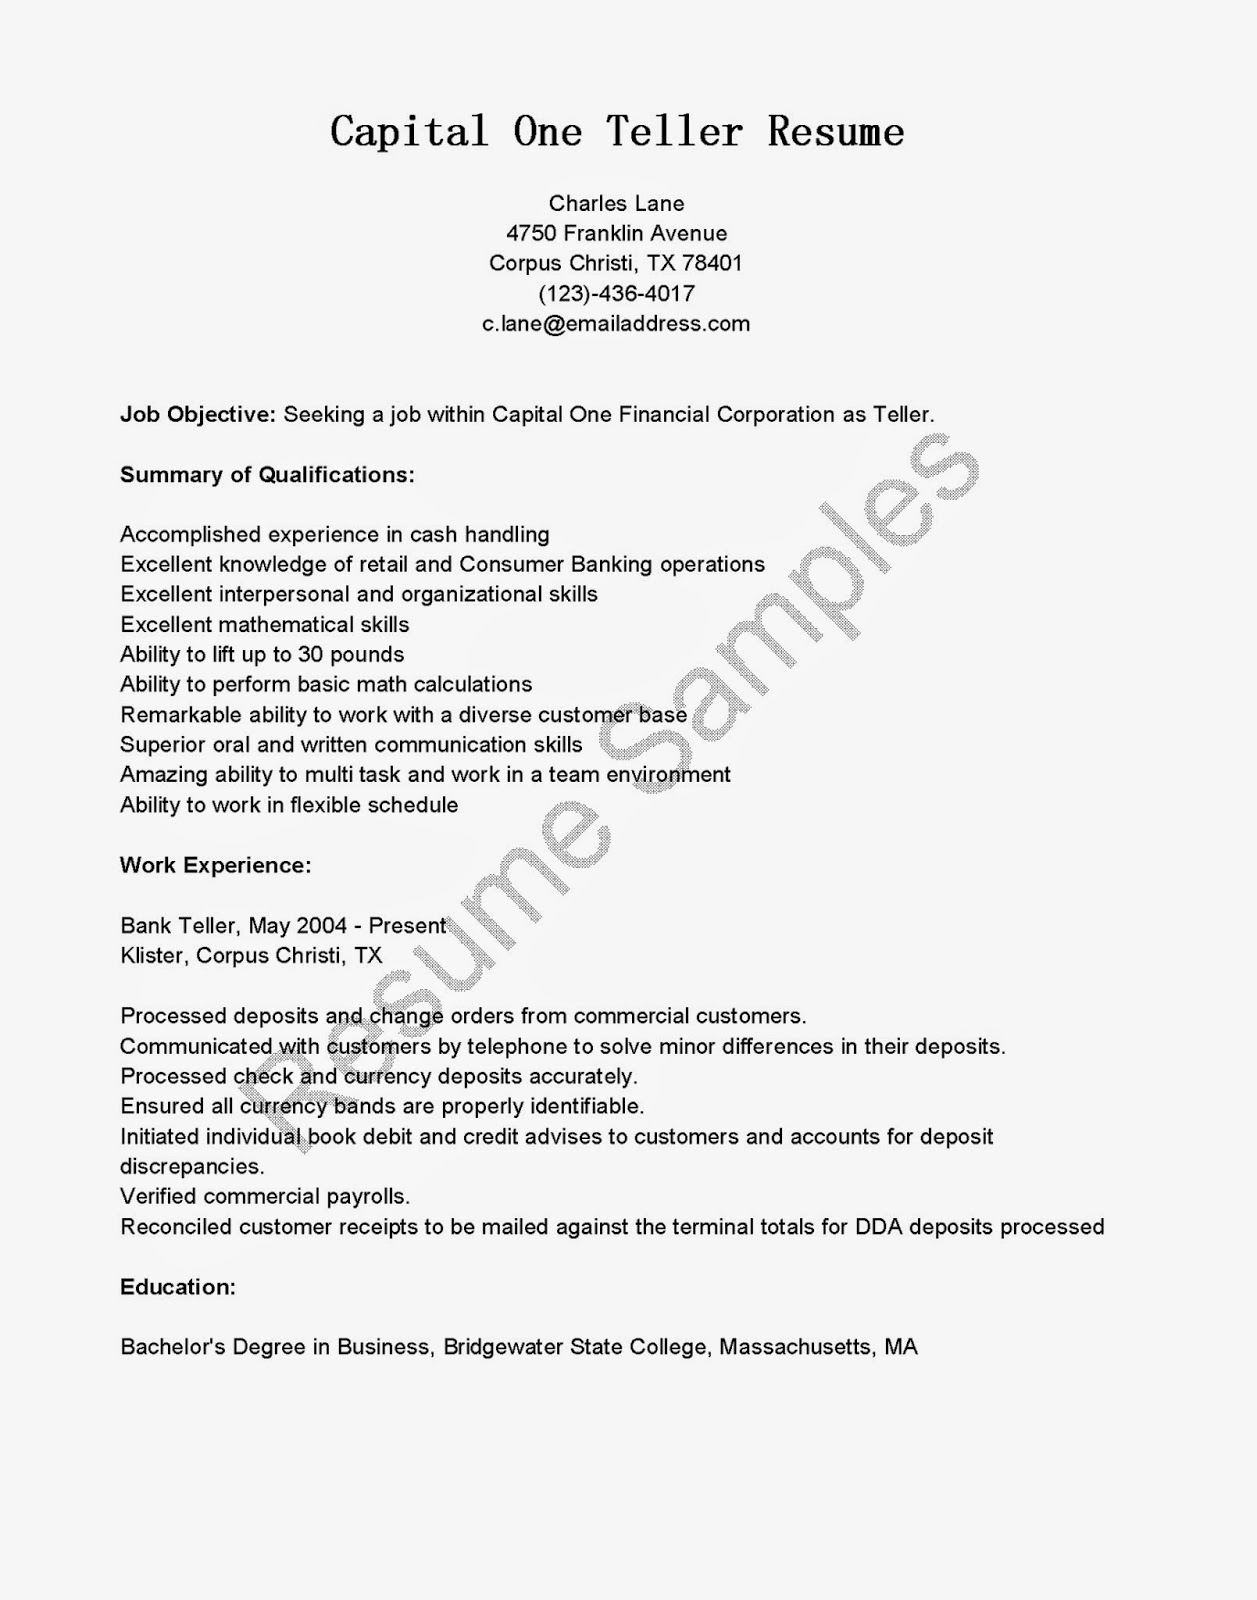 Resume Samples Capital e Teller Resume Sample